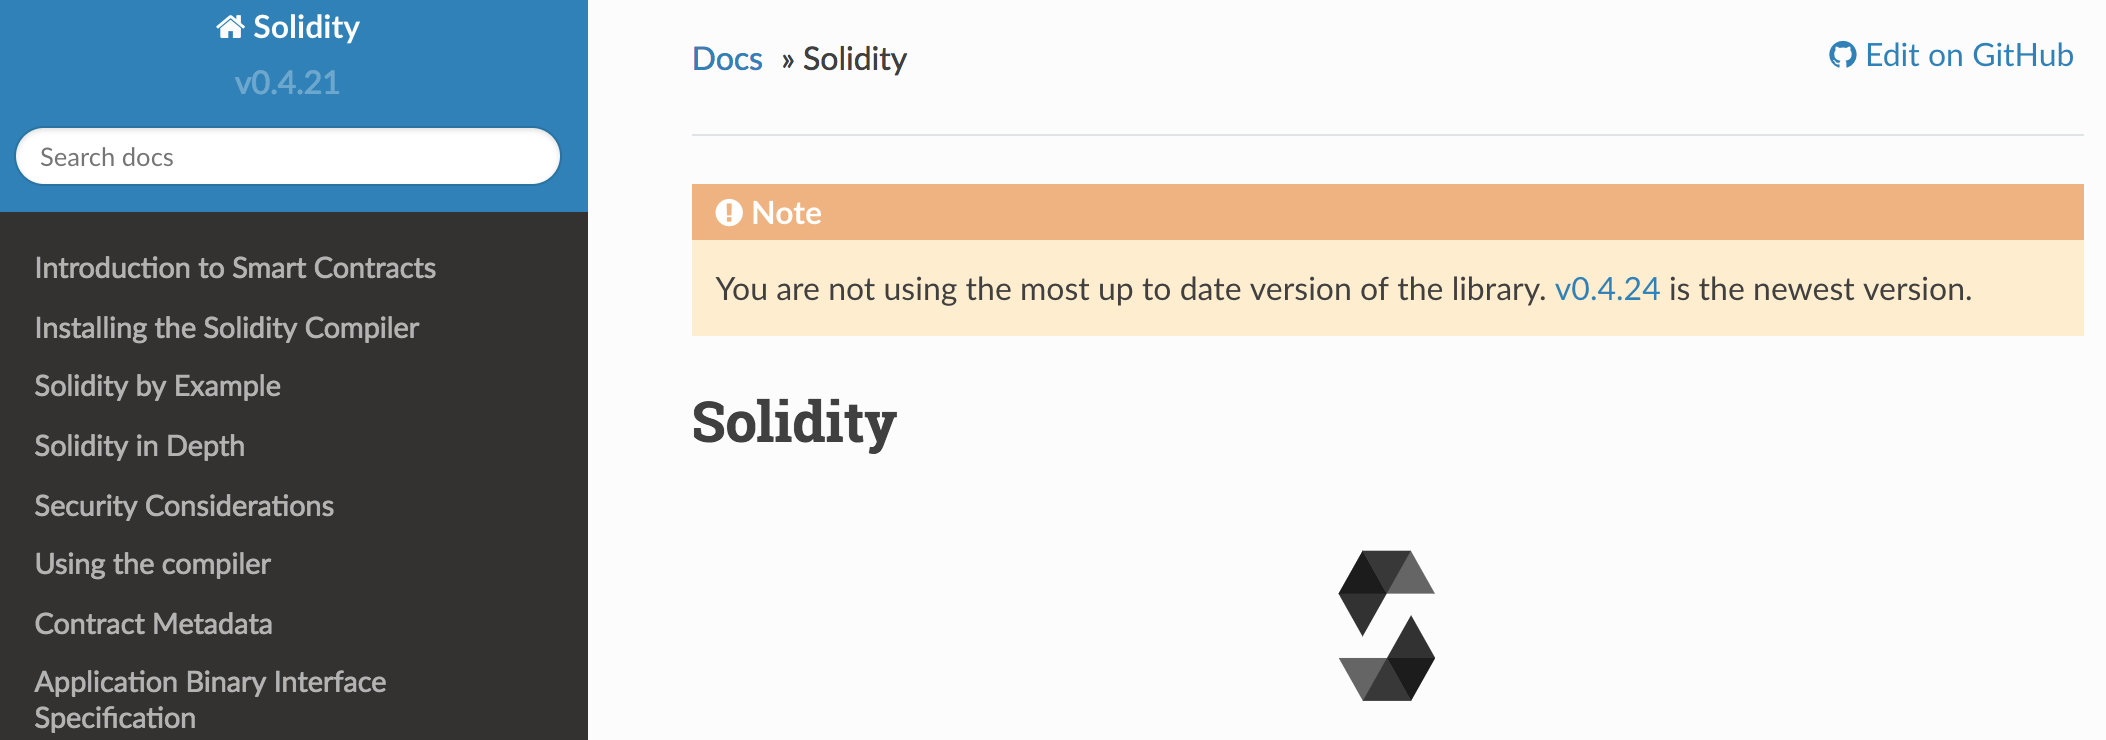 Solidity Documentation